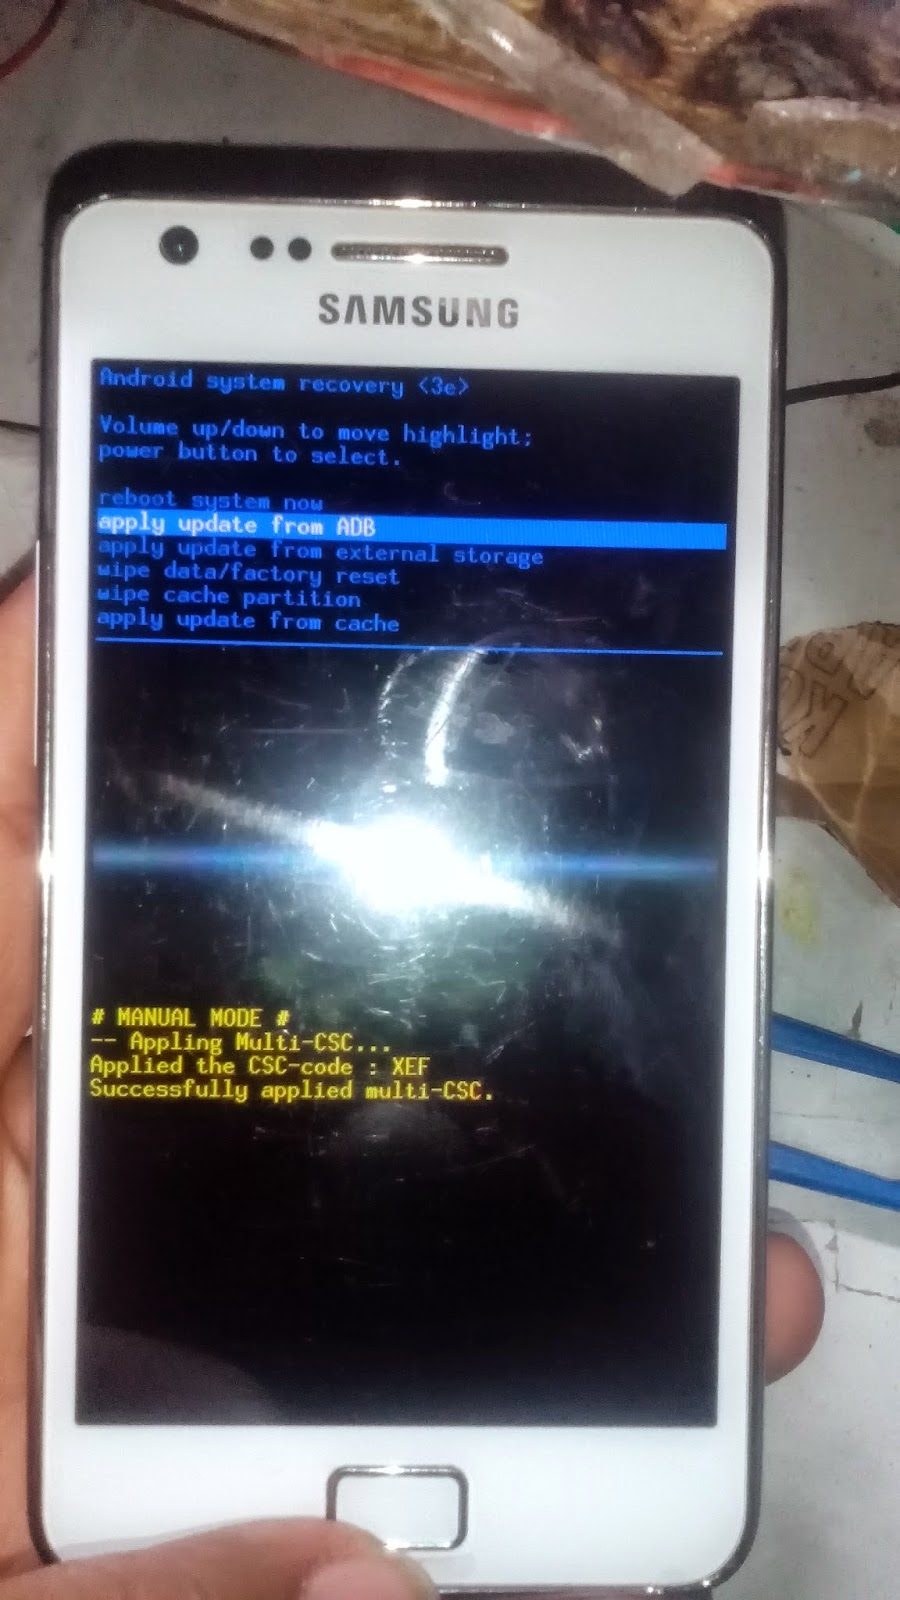 Update Galaxy S2 GT I9100G with Jellybean 4.1.2 XWLSR ...